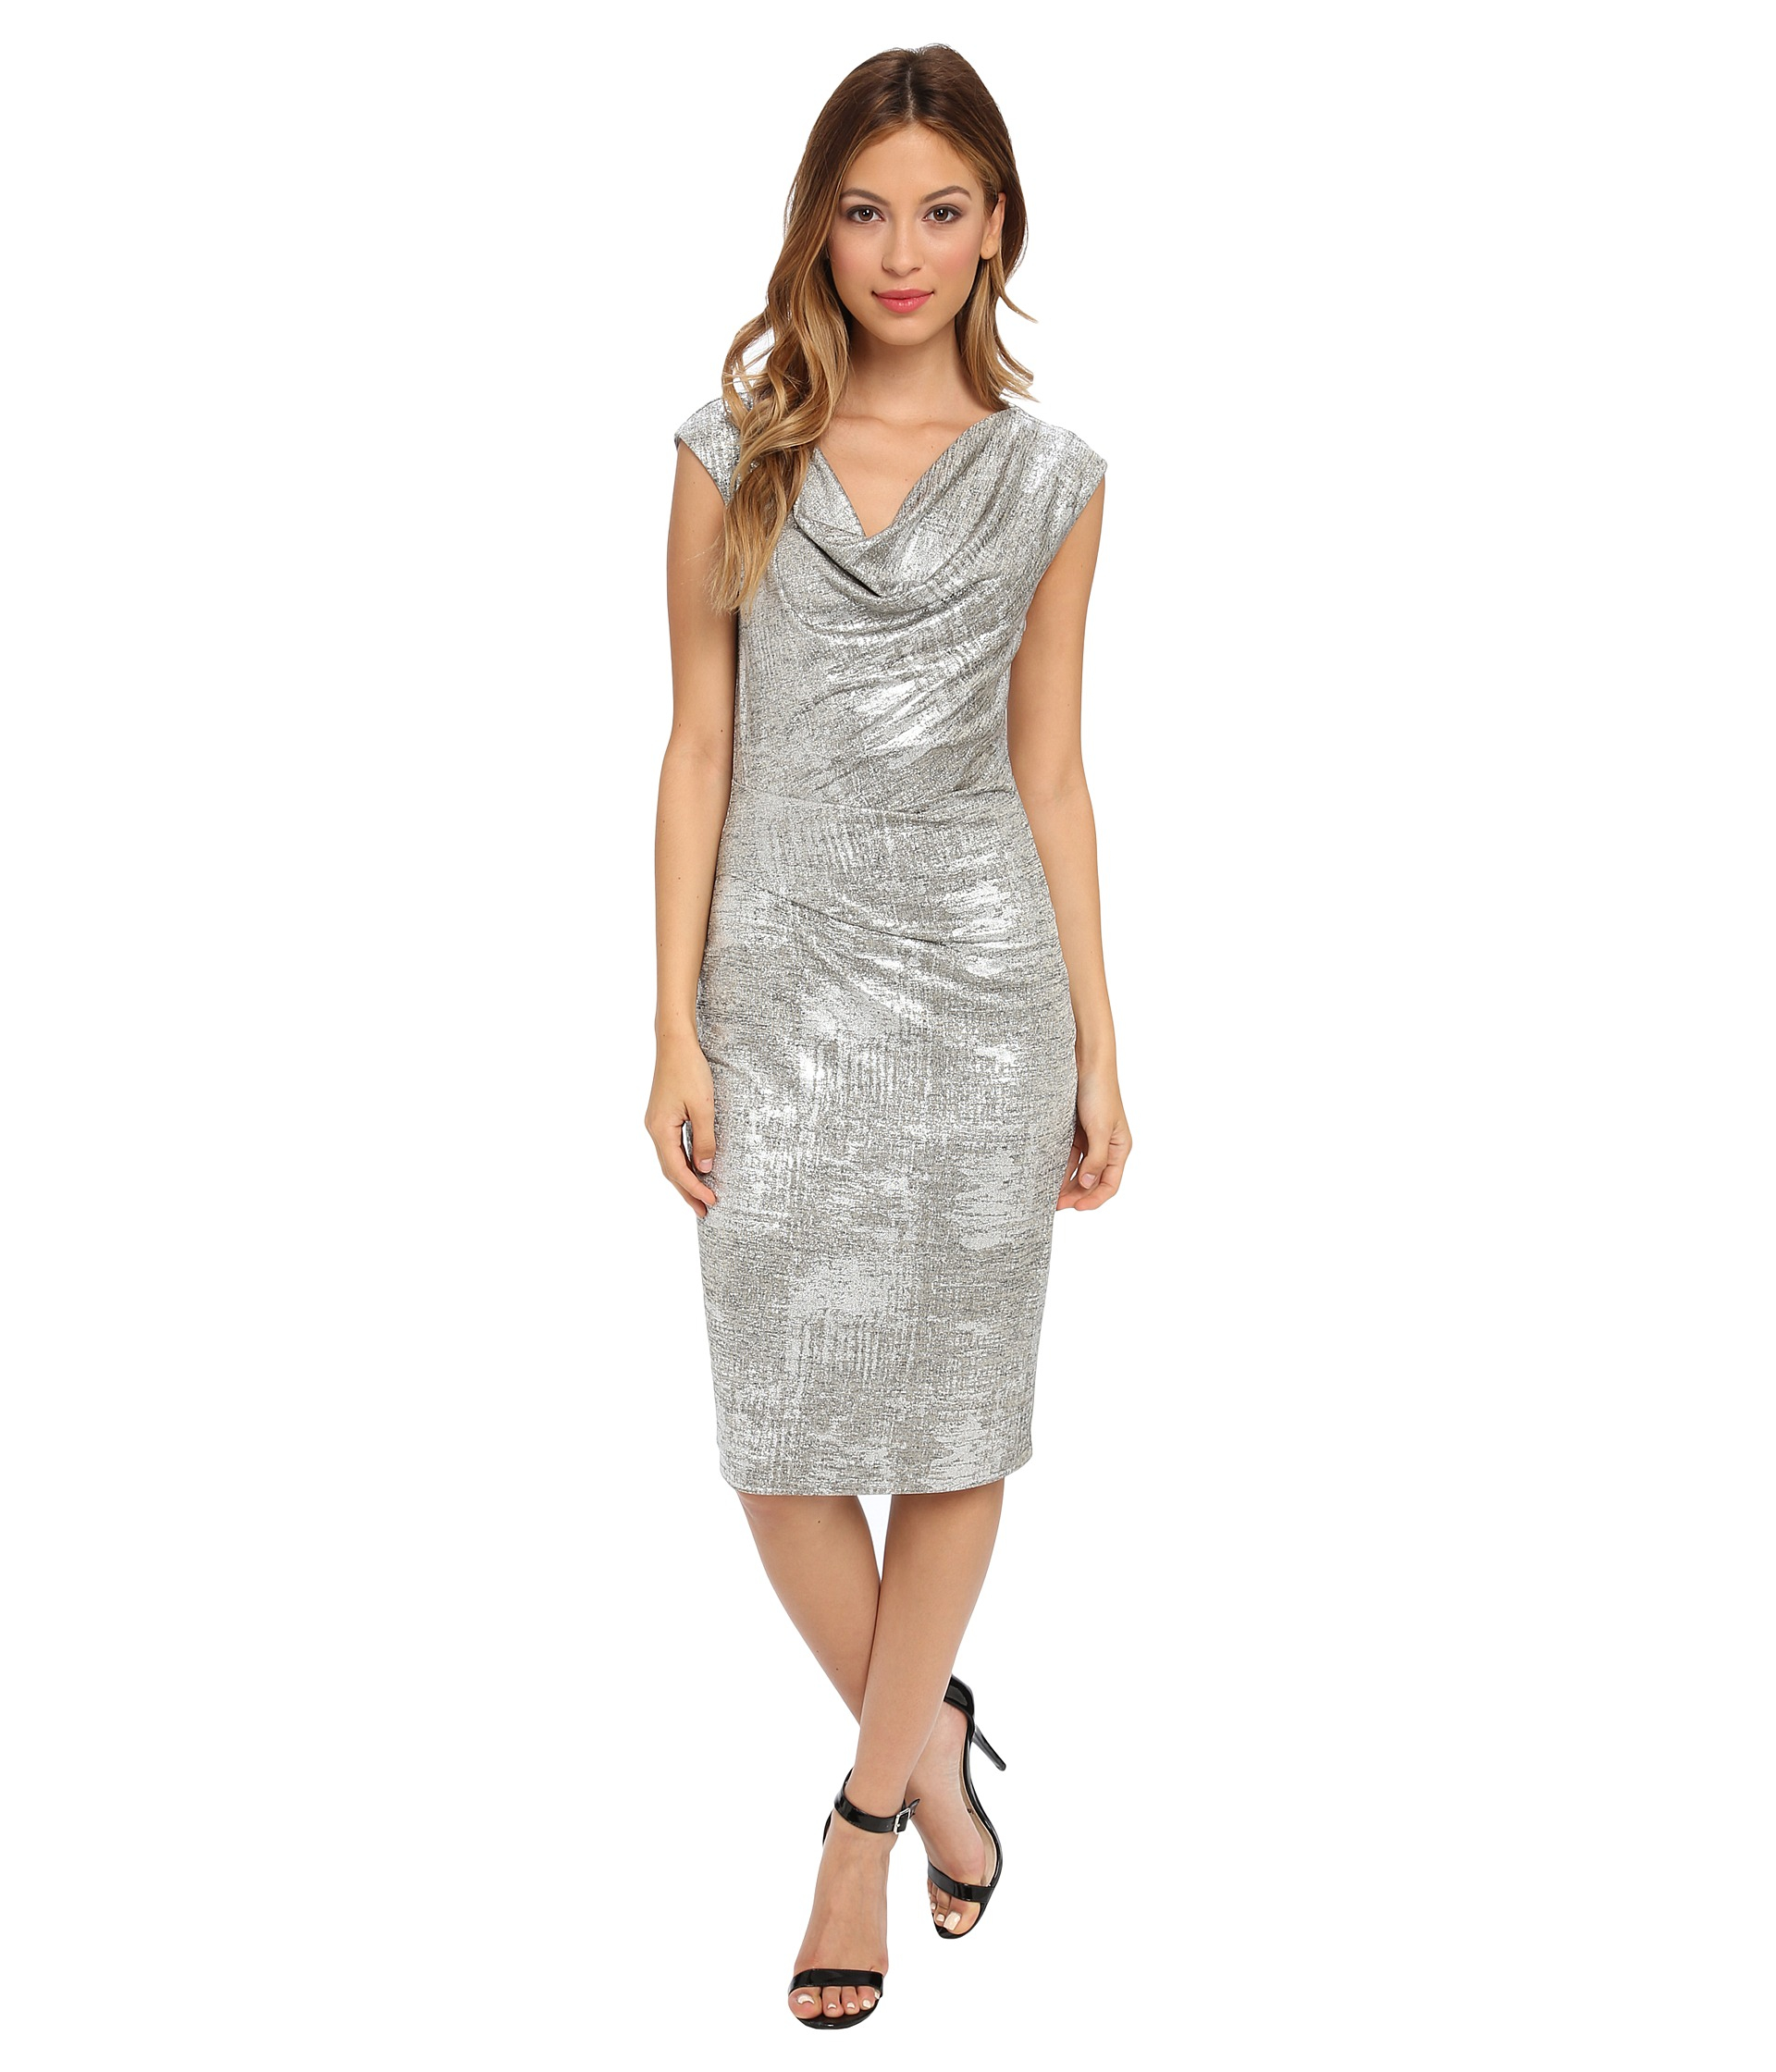 Cowl Dress: Vince Camuto Onepiece Silver Metallic Cowl Neck